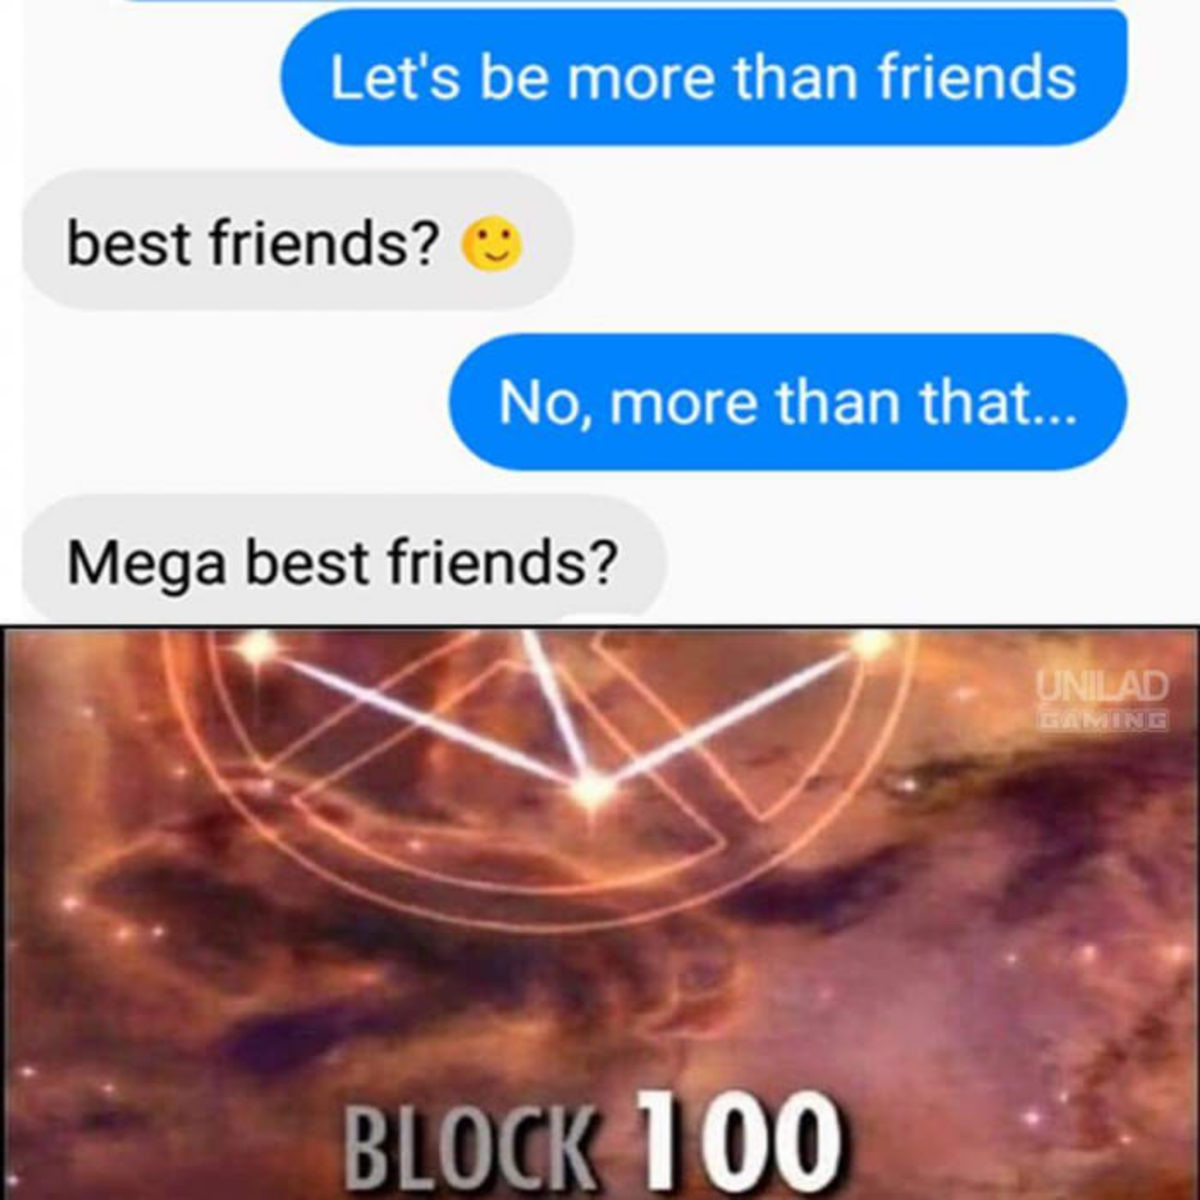 The dragon block. join list: VideoGameHumor (1692 subs)Mention Clicks: 566337Msgs Sent: 5331380Mention History. Let' s be more than friends best friends? it No,